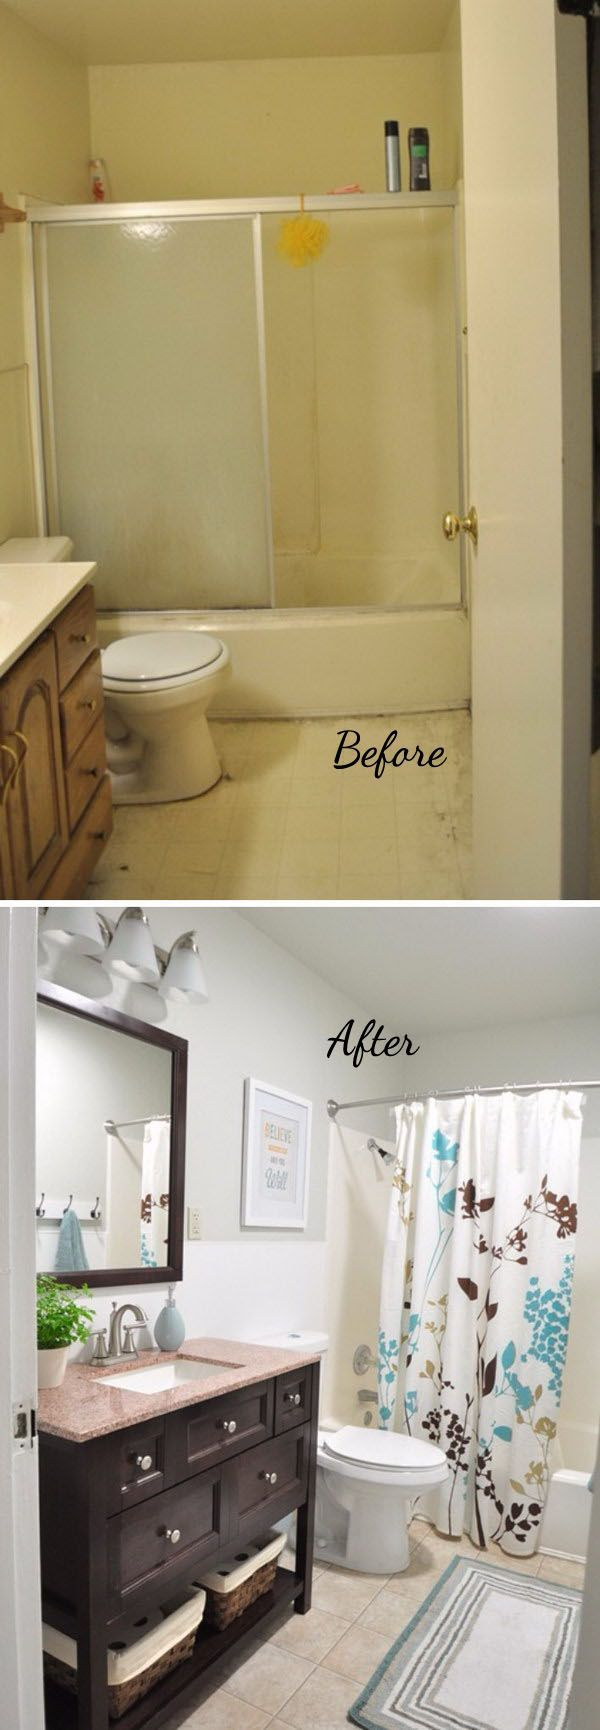 Old home bathroom remodel ideas - Before And After 20 Awesome Bathroom Makeovers Diy Bathroom Remodelbathroom Remodelingbath Remodelremodeling Ideasold Home